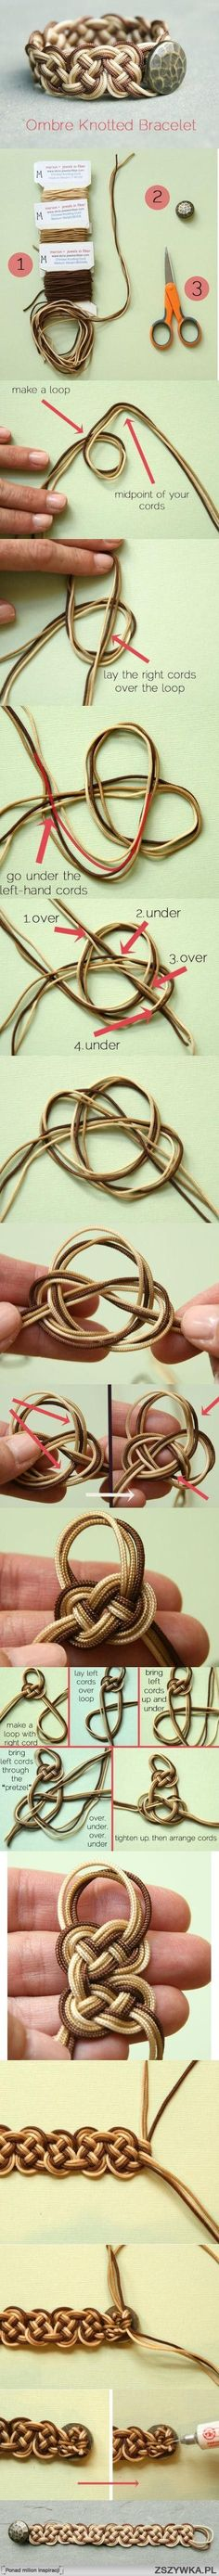 Ombre Celtic Knot Bracelet #jewelry #tutorial